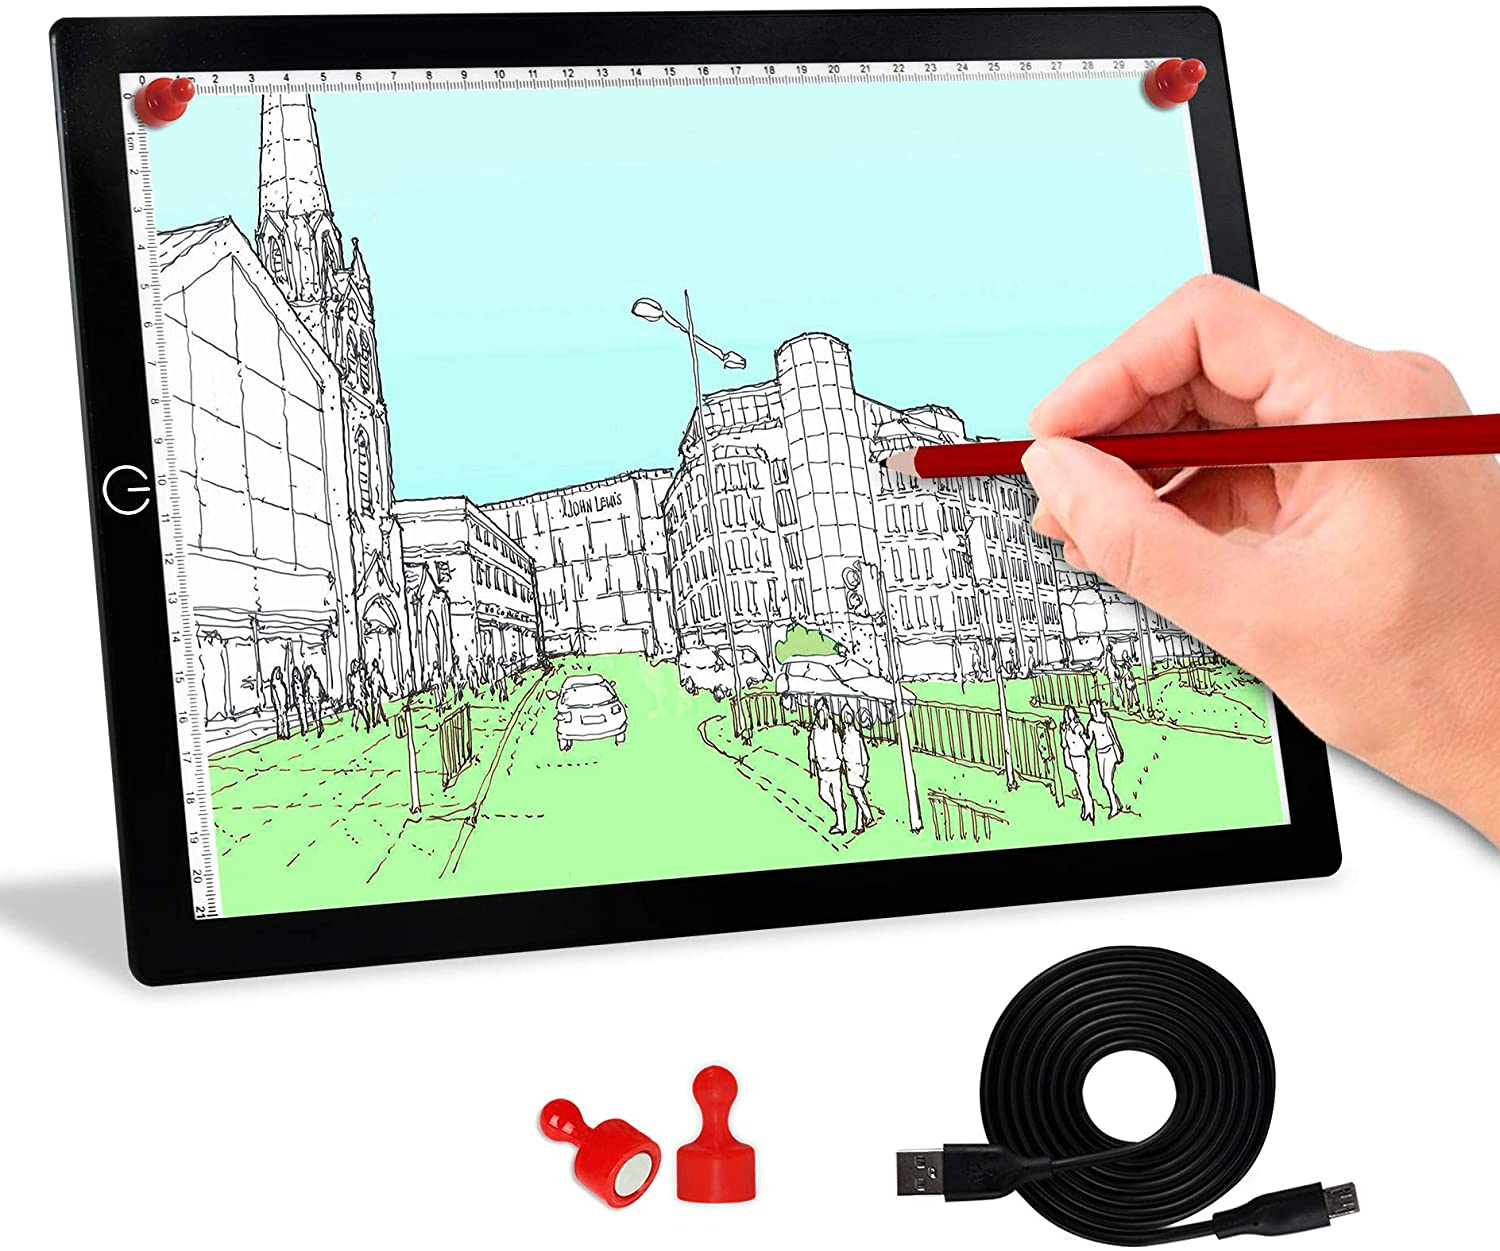 Tracing Light Box, A4 Light Board Portable LED Light Pad Tracer Dimmable Winshine Copy Board Artcraft Tracing Light with USB Power Cable for Artists Drawing, Sketching, Animation